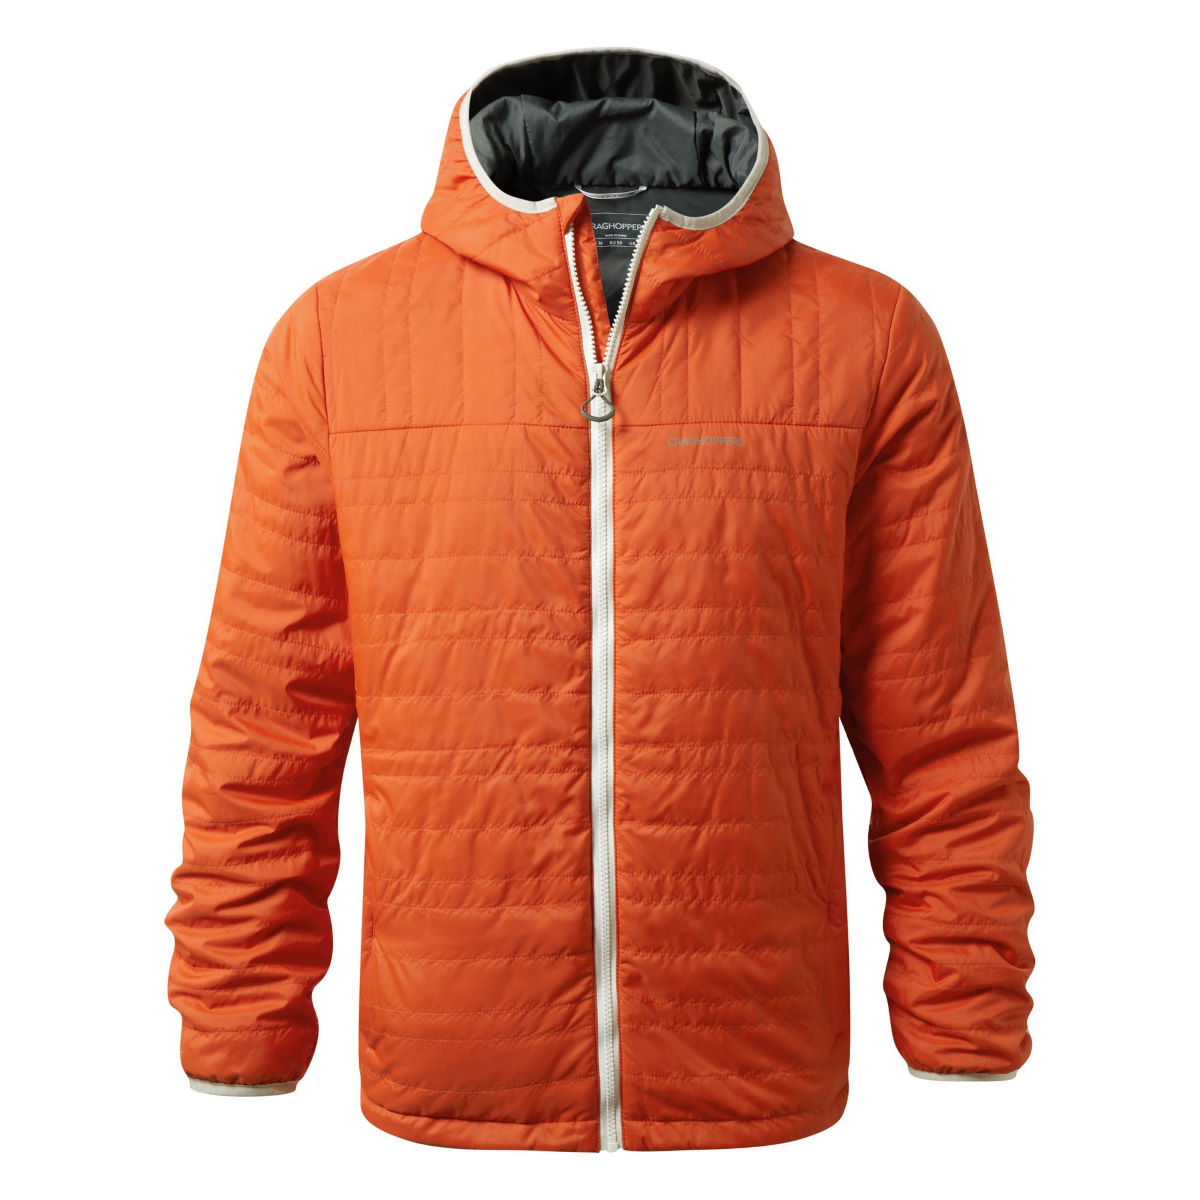 Veste Craghoppers Compresslite II - S Spice Orange